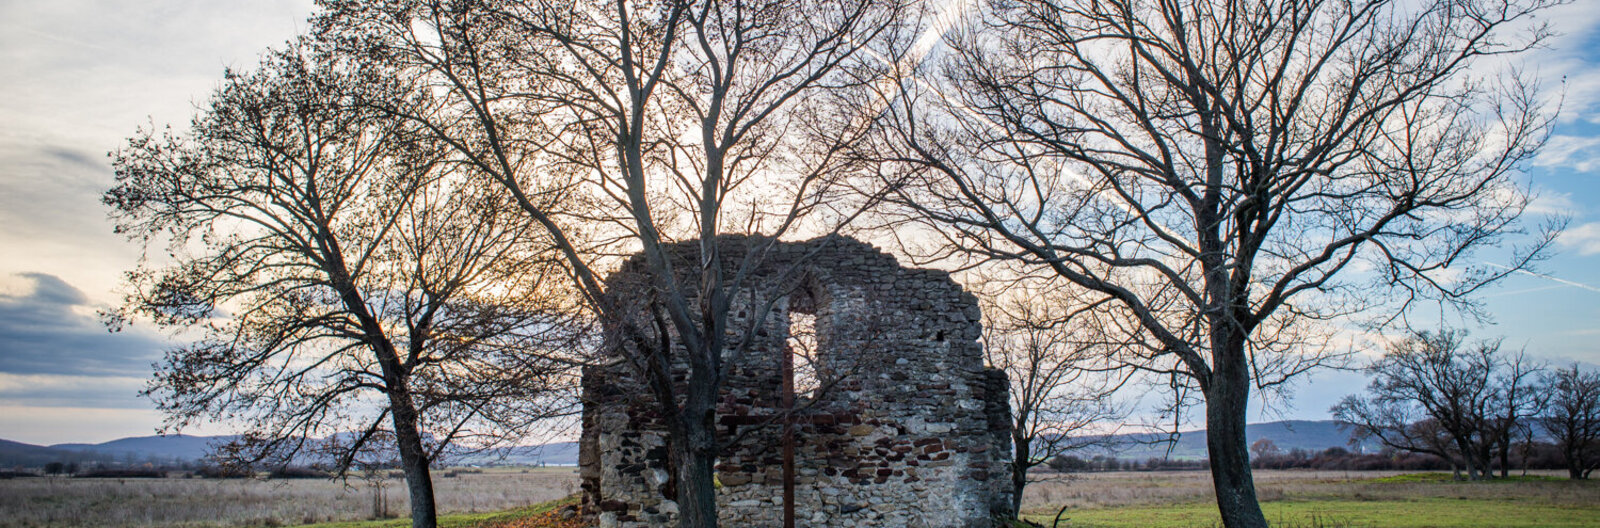 10 unique church ruins from the Árpád era